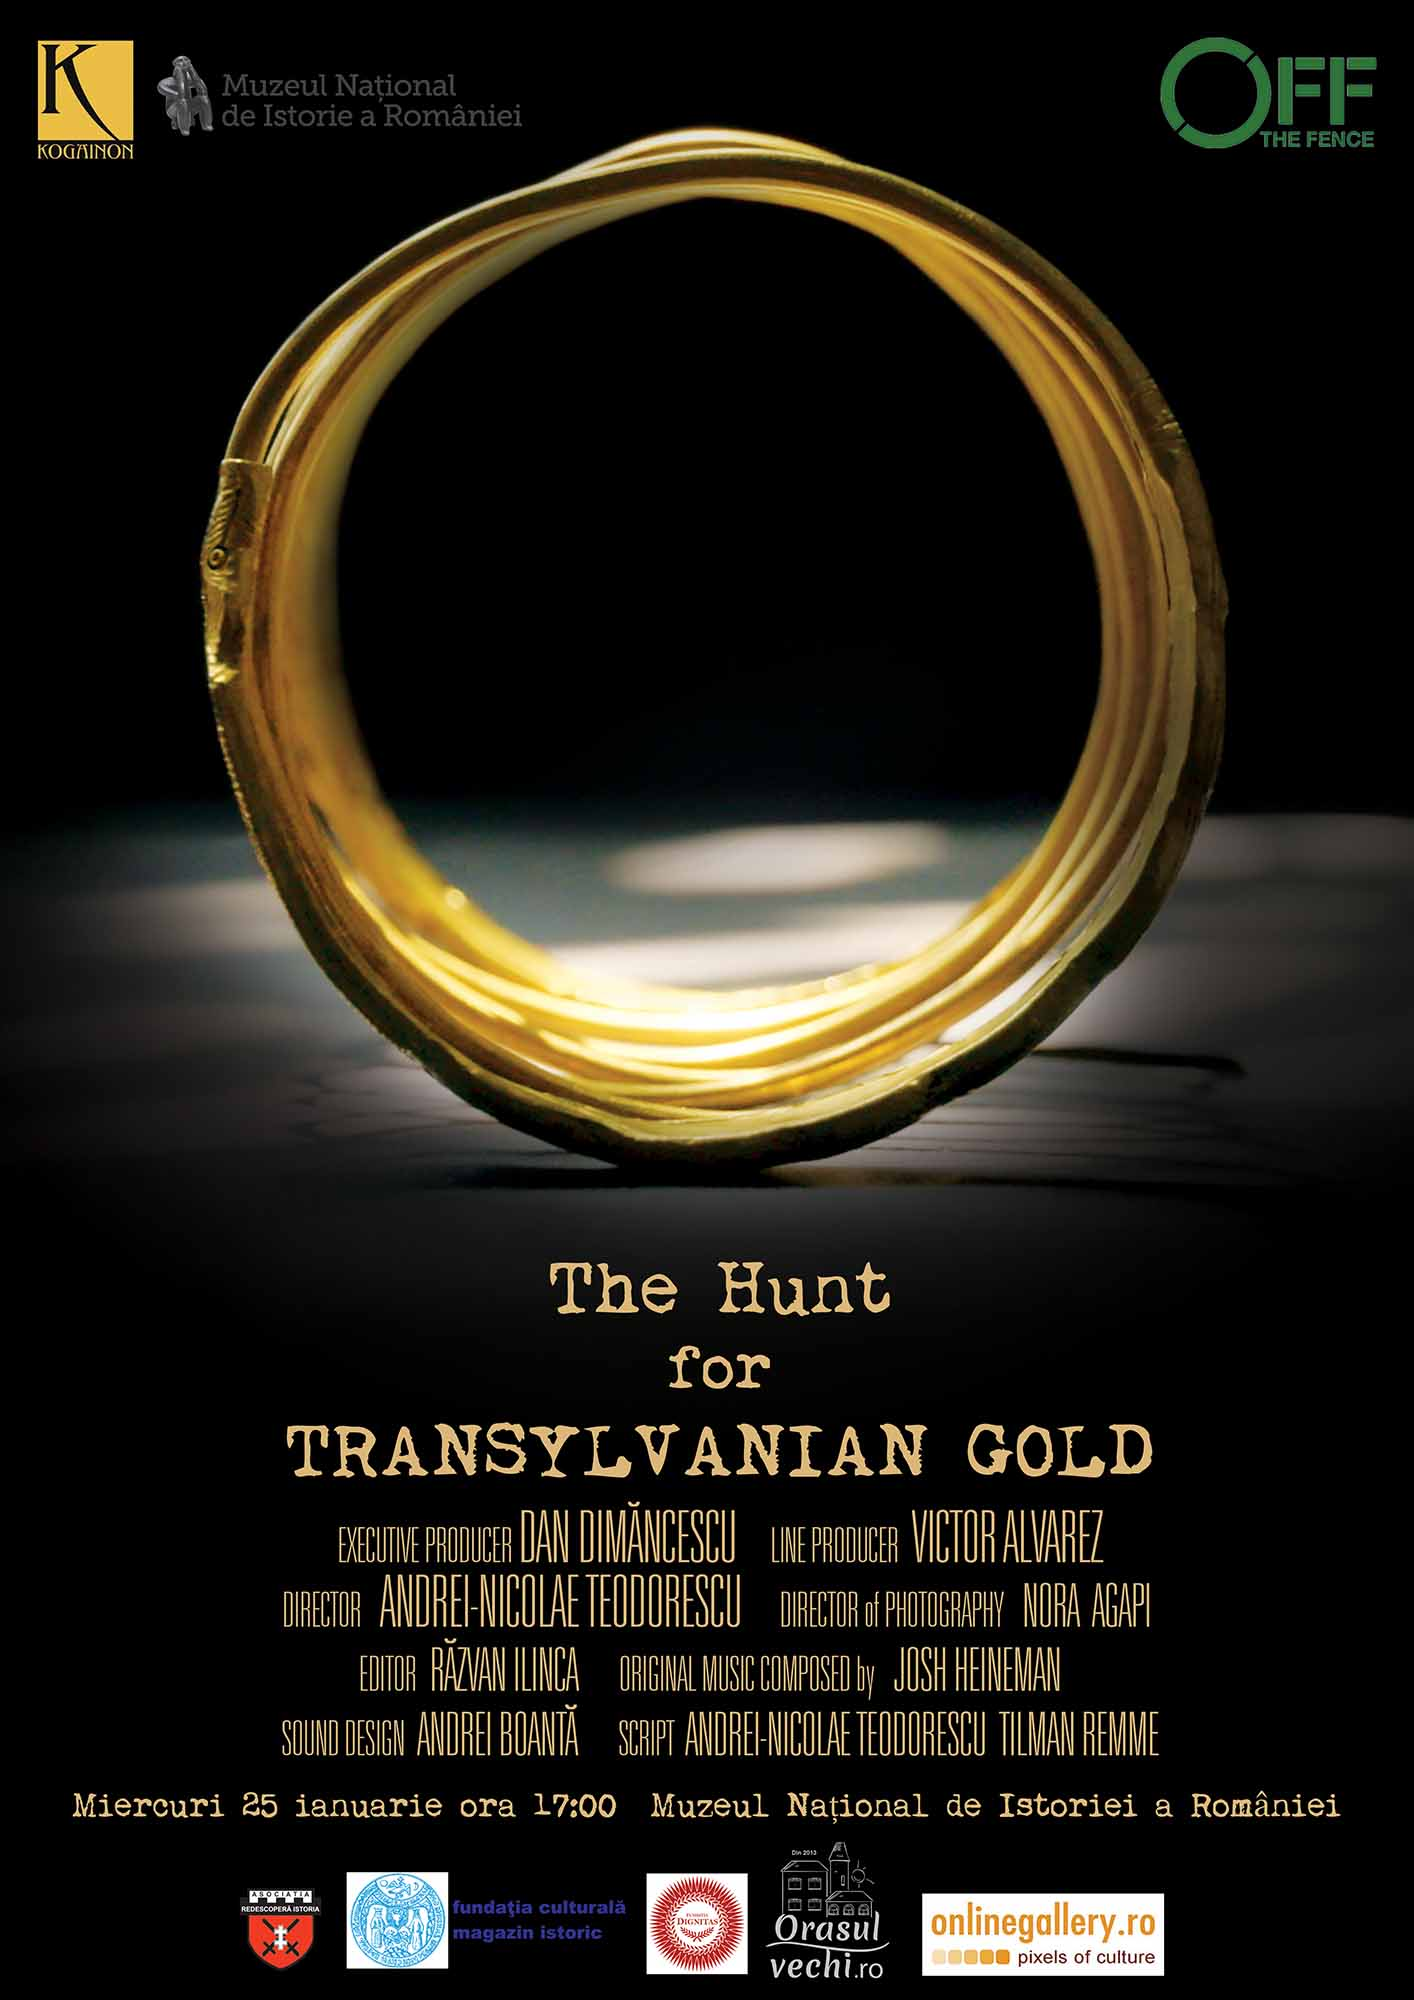 afis_premiera-the-hunt-for-transylvanian-gold_mnir_25-01-2017